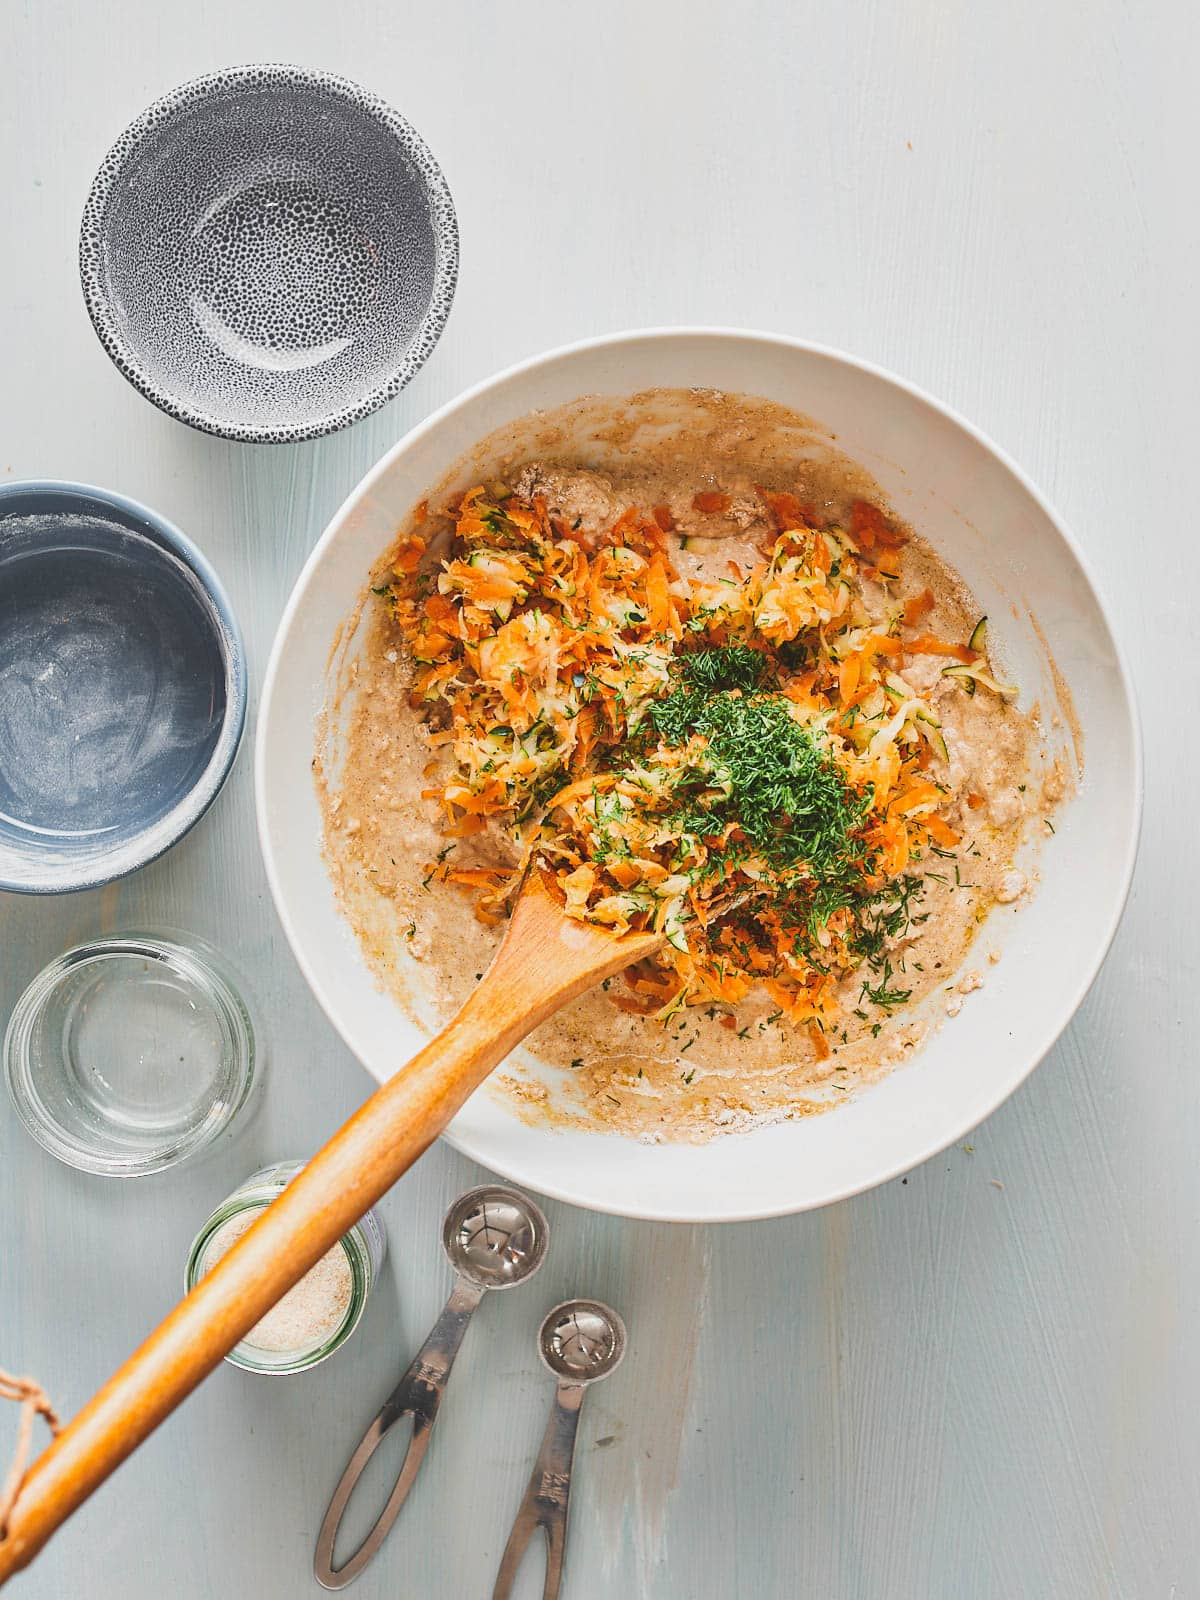 Adding the grated vegetables and dill to the mixing bowl